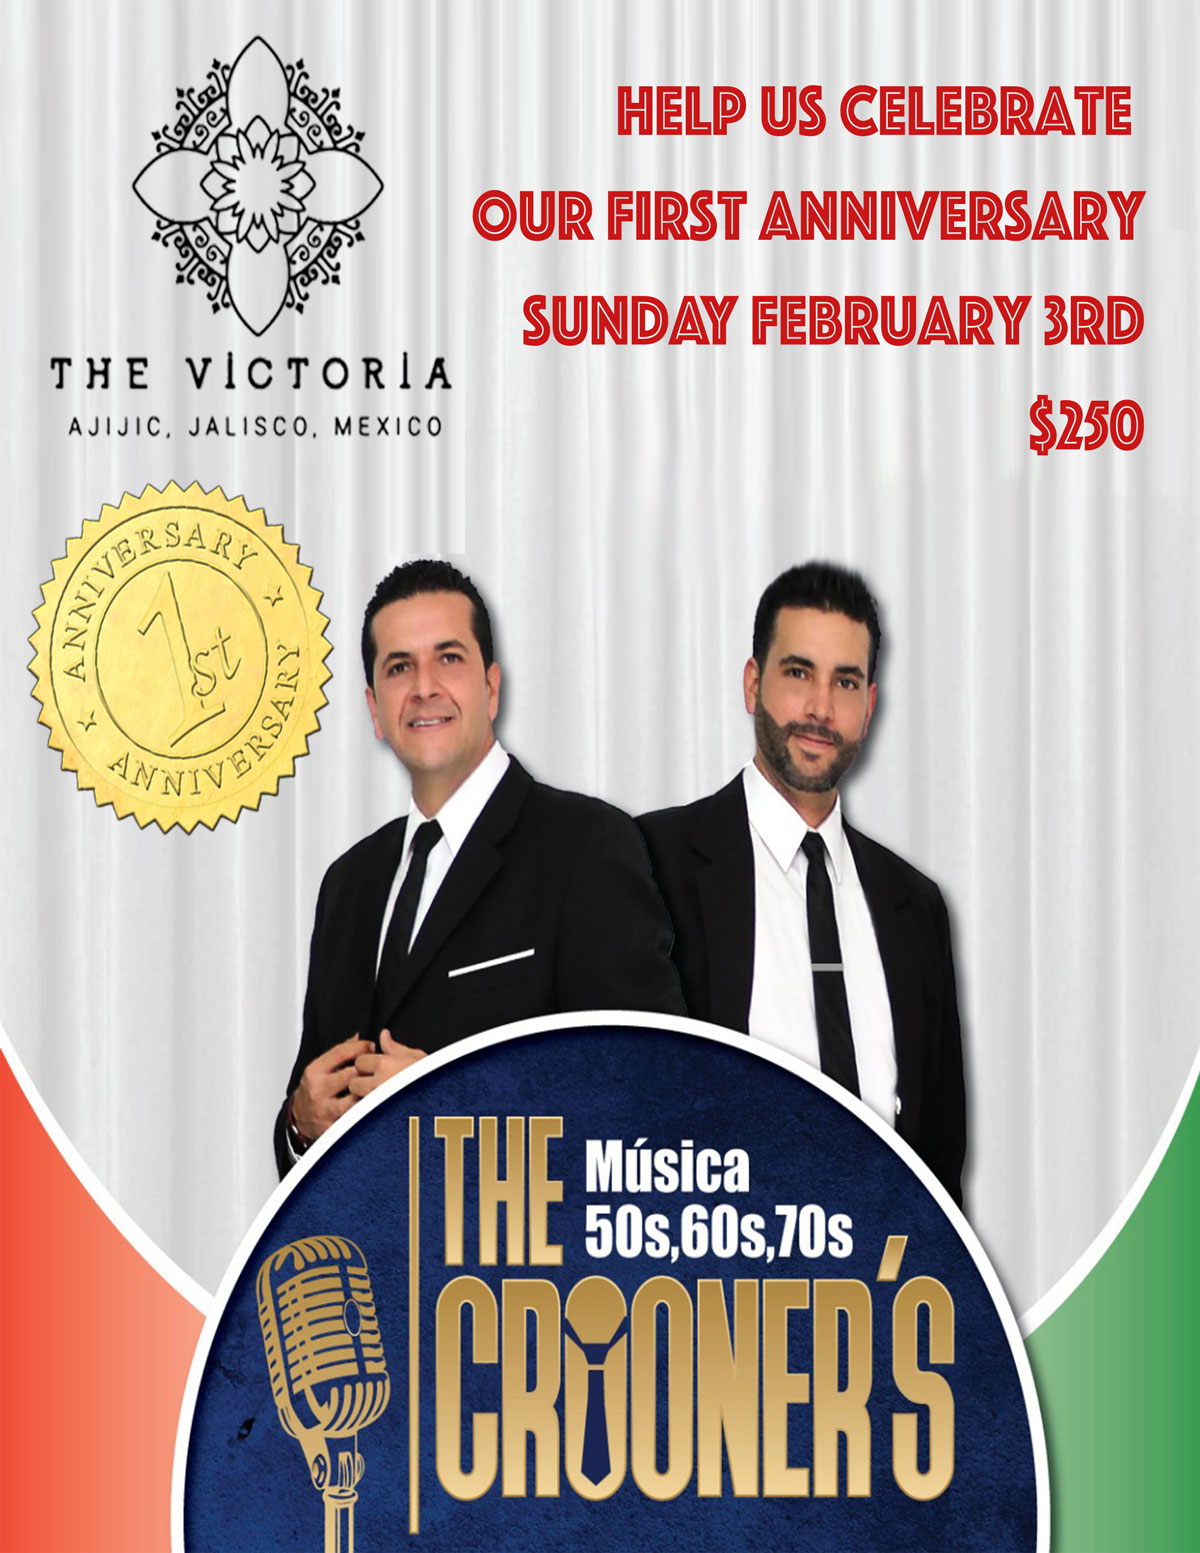 Our First Anniversary with The Crooners